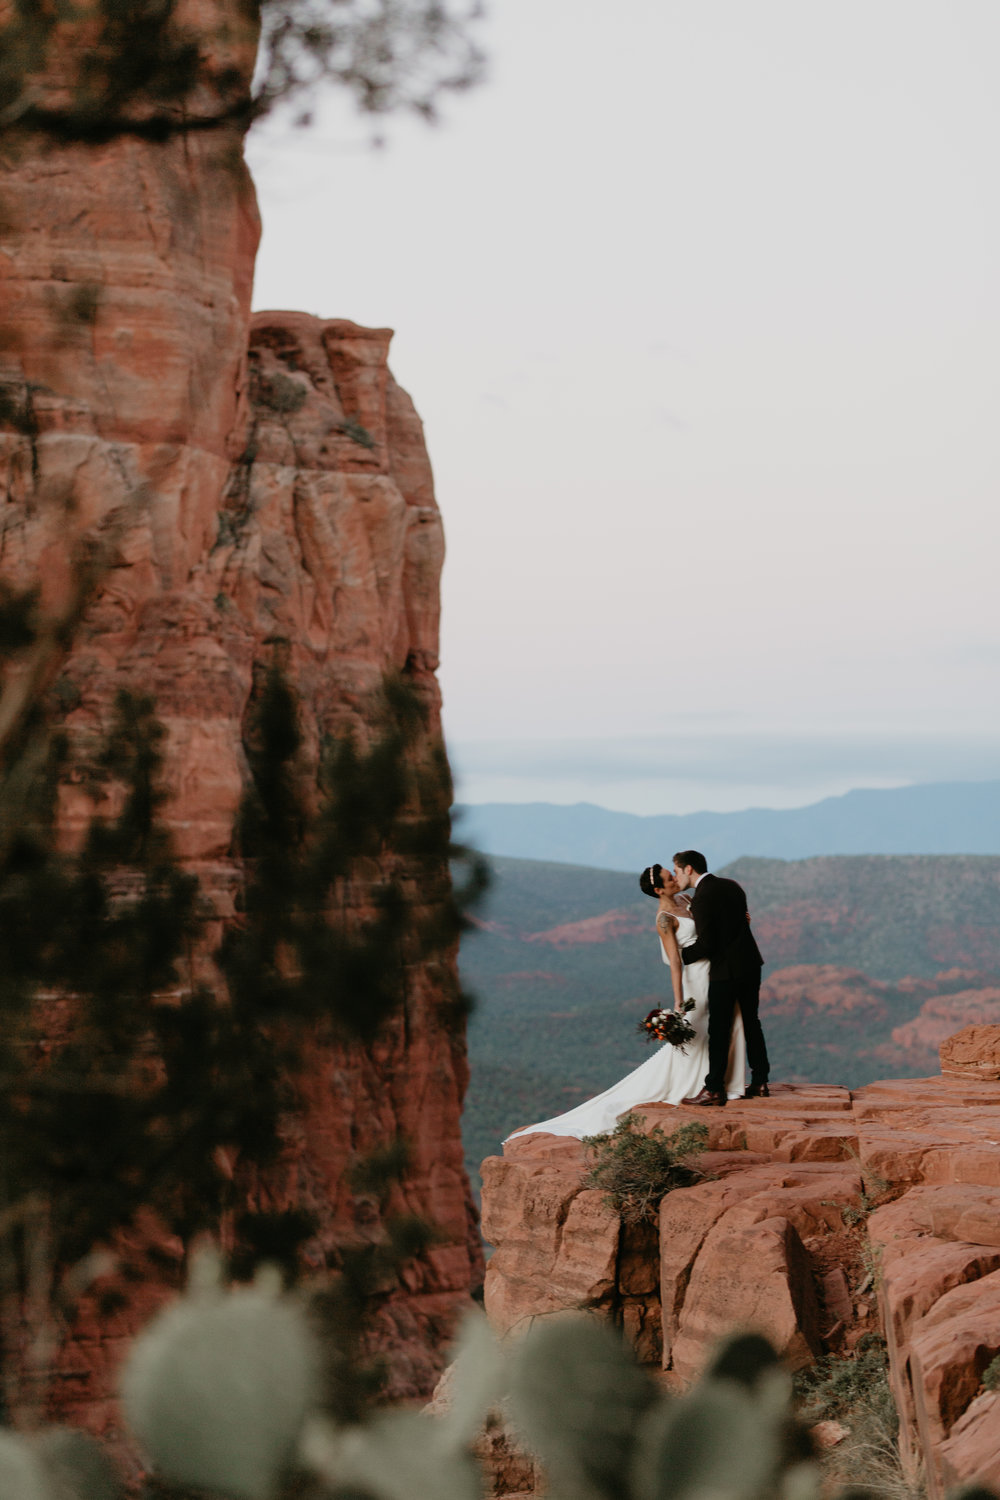 nicole-daacke-photography-sedona-arizona-adventurous-elopement-adventure-elope-photographer-cathedral-rock-sedona-vortex-intimate-wedding-hiking-elopement-photographer-5.jpg